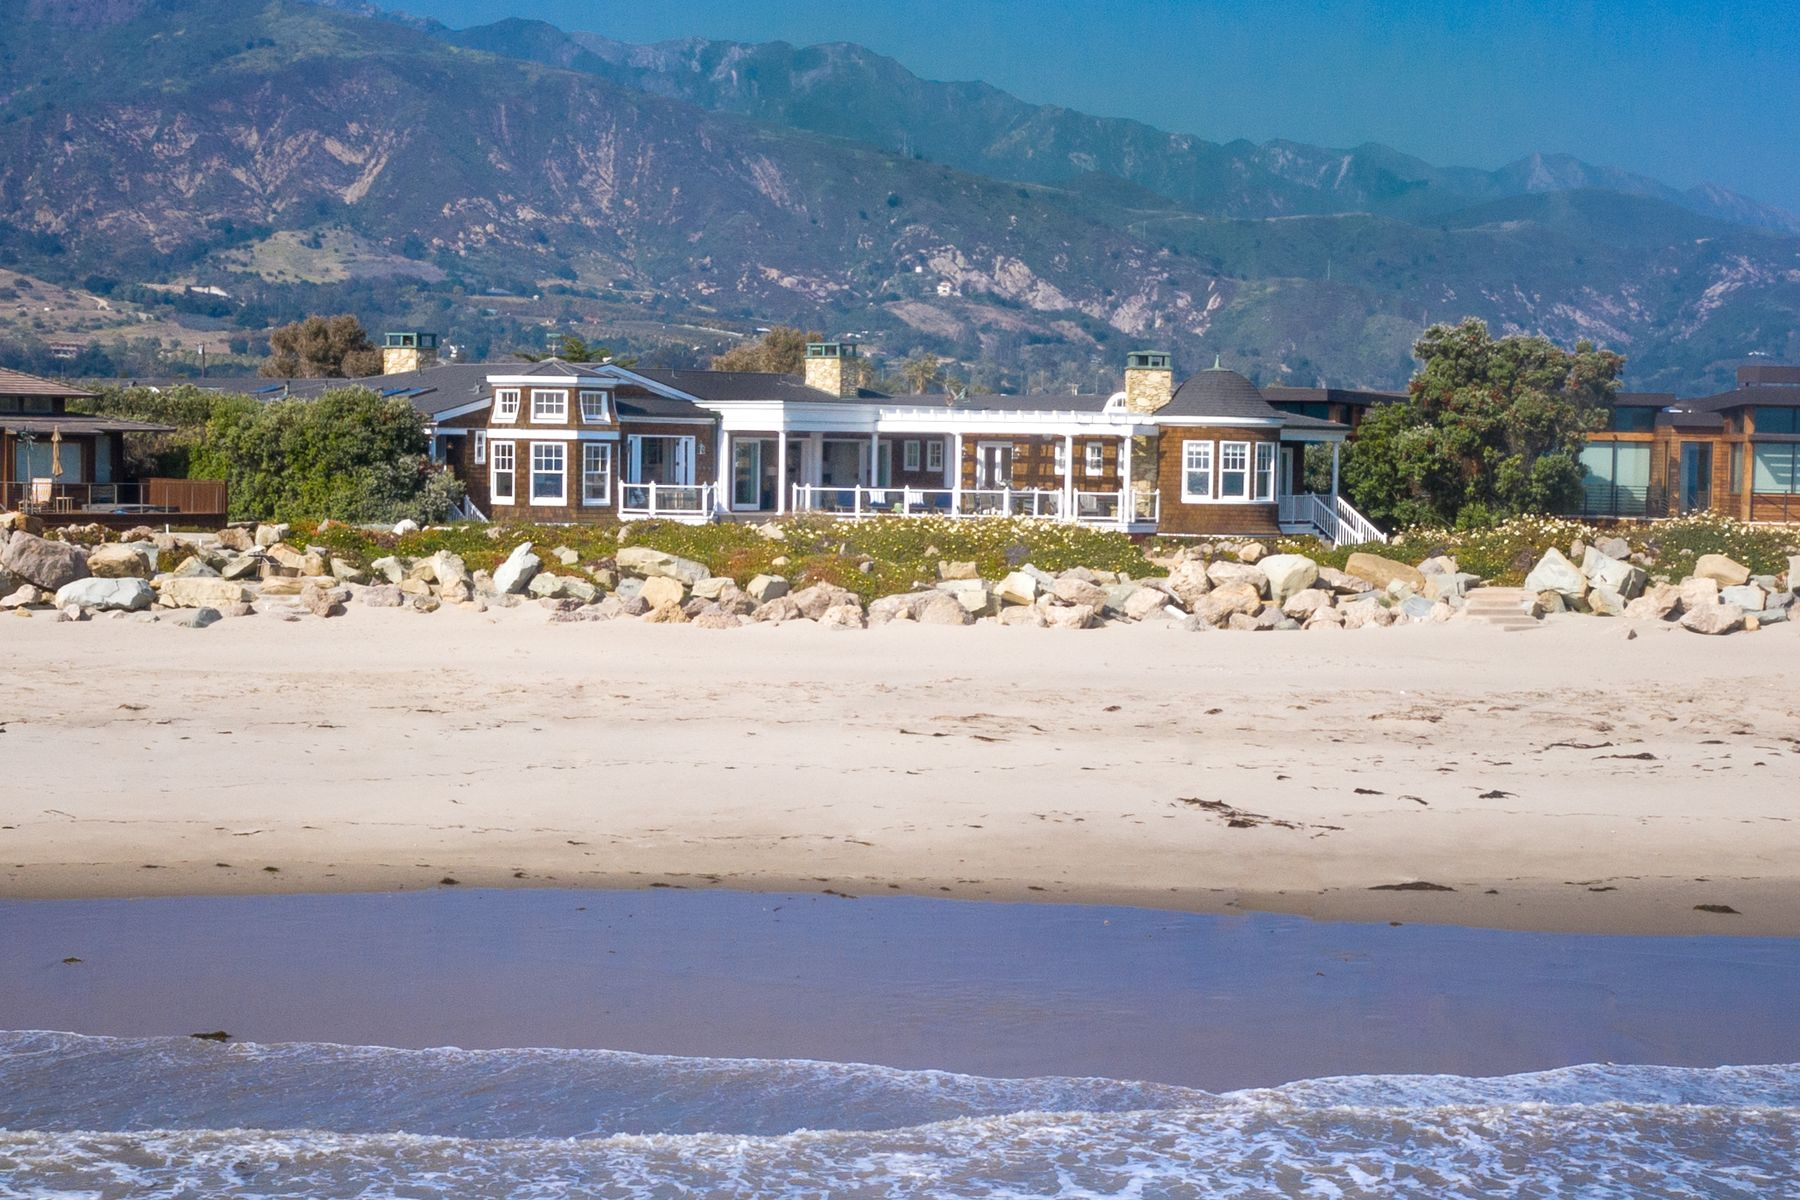 Single Family Homes for Sale at Private Ocean Front Retreat 821 Sand Point Road Carpinteria, California 93013 United States